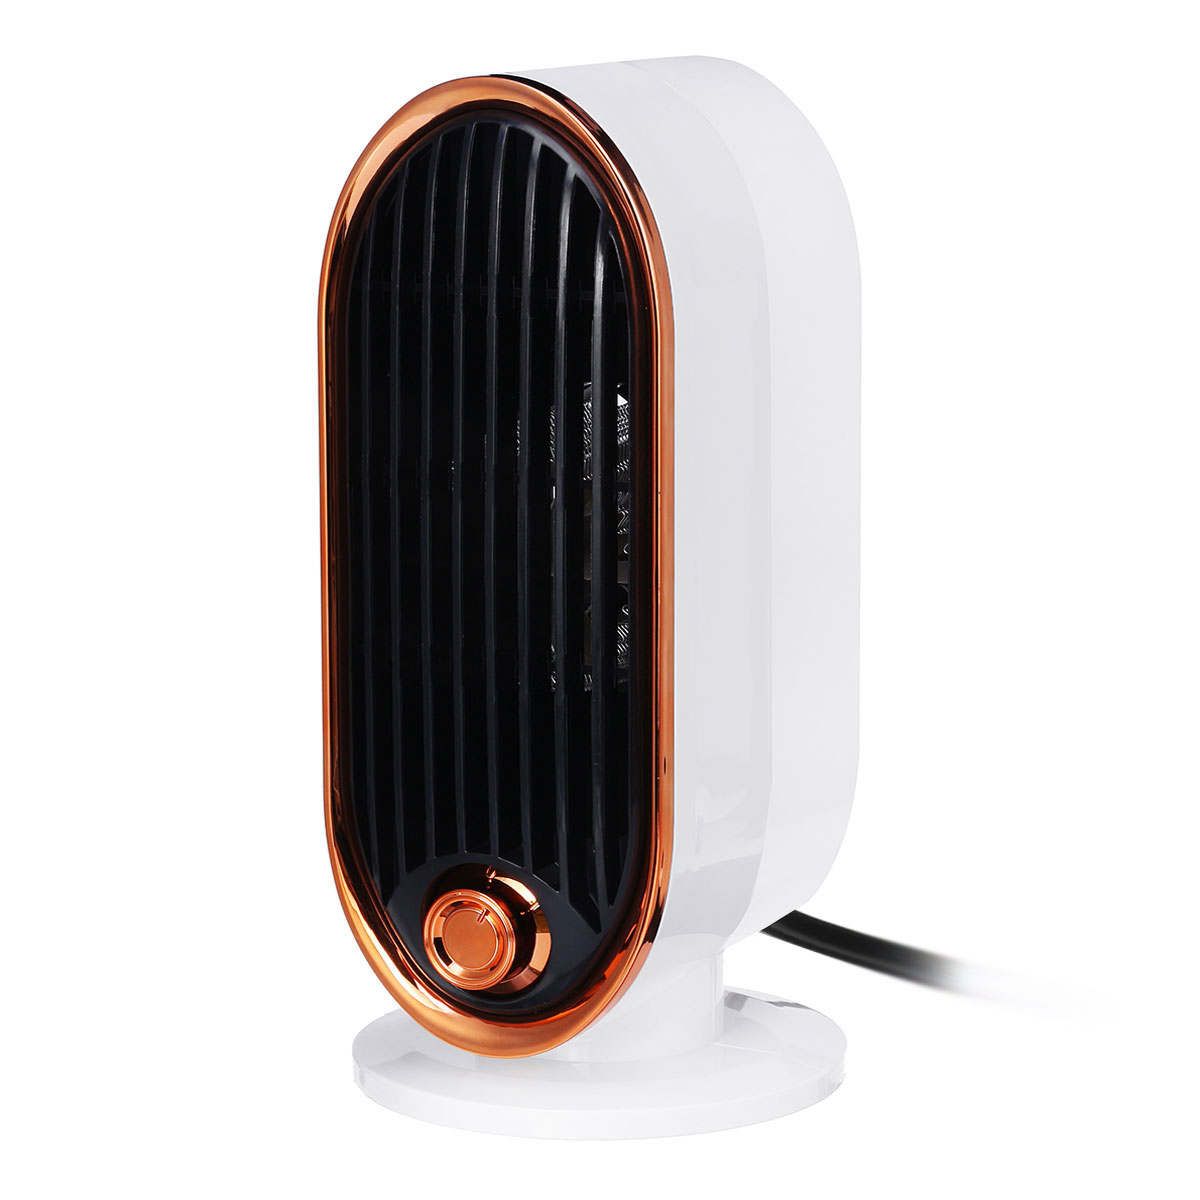 220V 700W Powered Portable Electric Air Space Heater Fast Heating Thermostat Hot